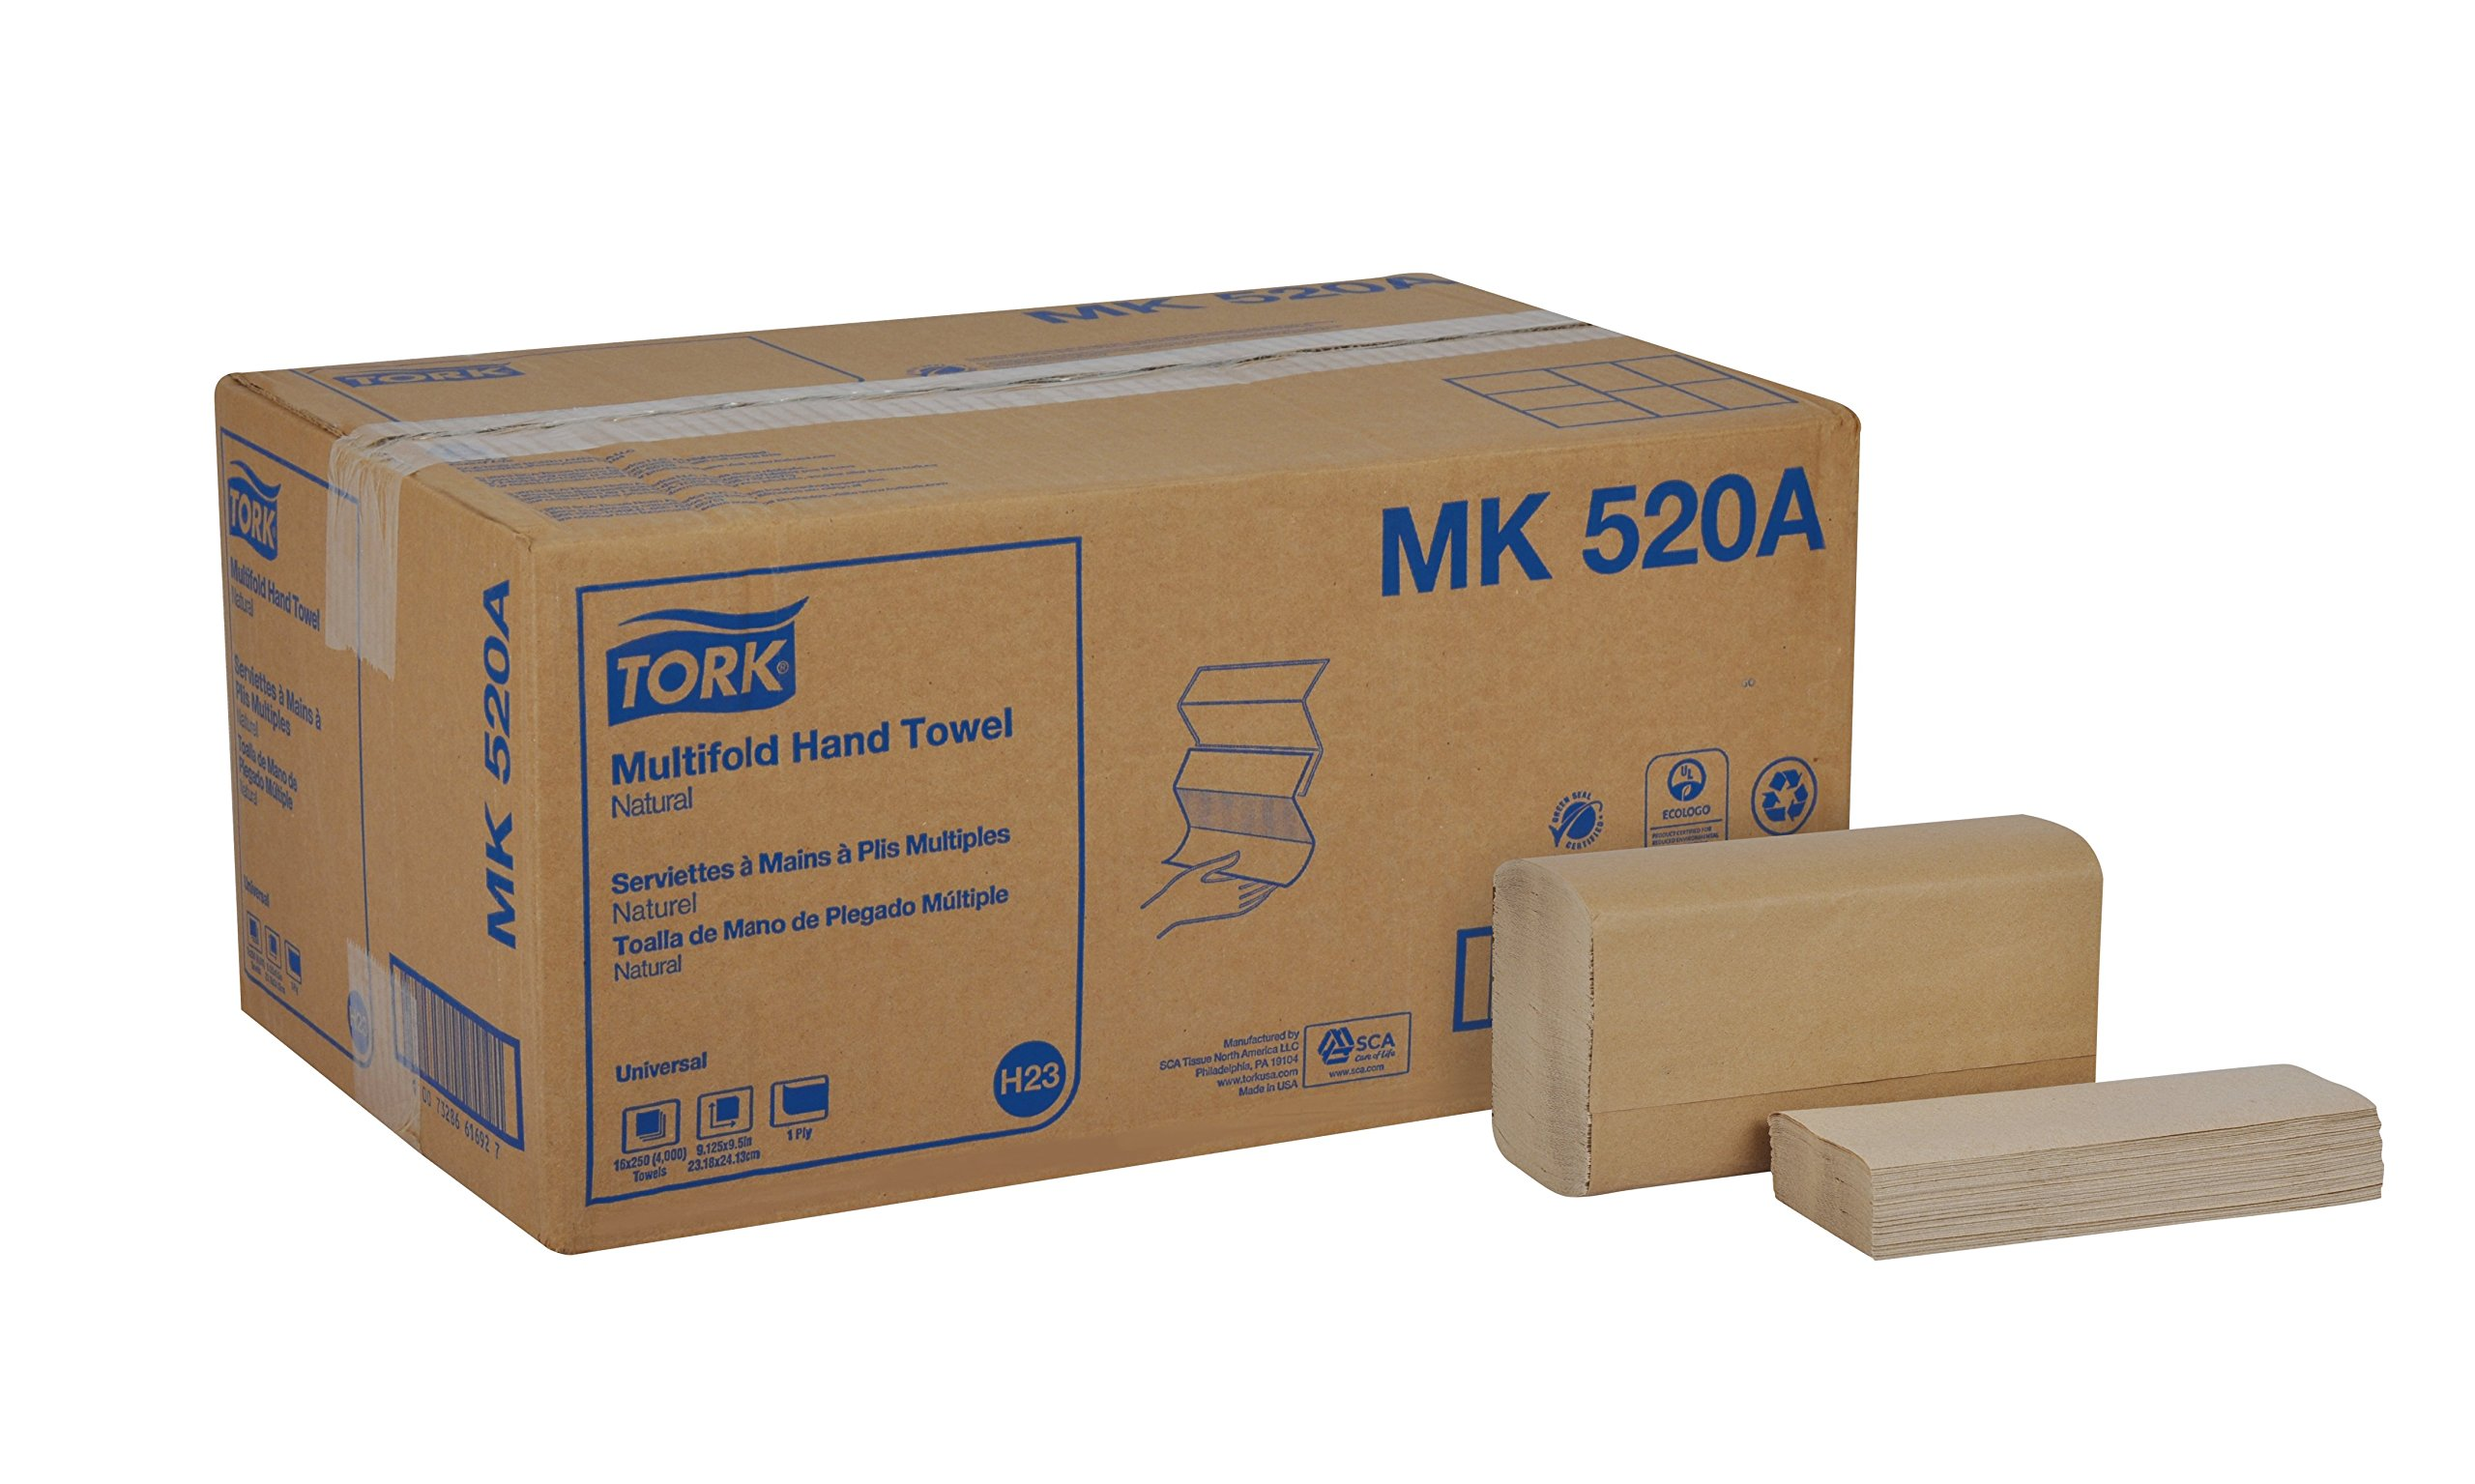 Tork Universal MK520A Multifold Paper Hand Towel, 1-Ply, 9.125'' Width x 9.5'' Length, Natural, Green Seal Certified (Case of 16 Packs, 250 per Pack, 4,000 Towels)